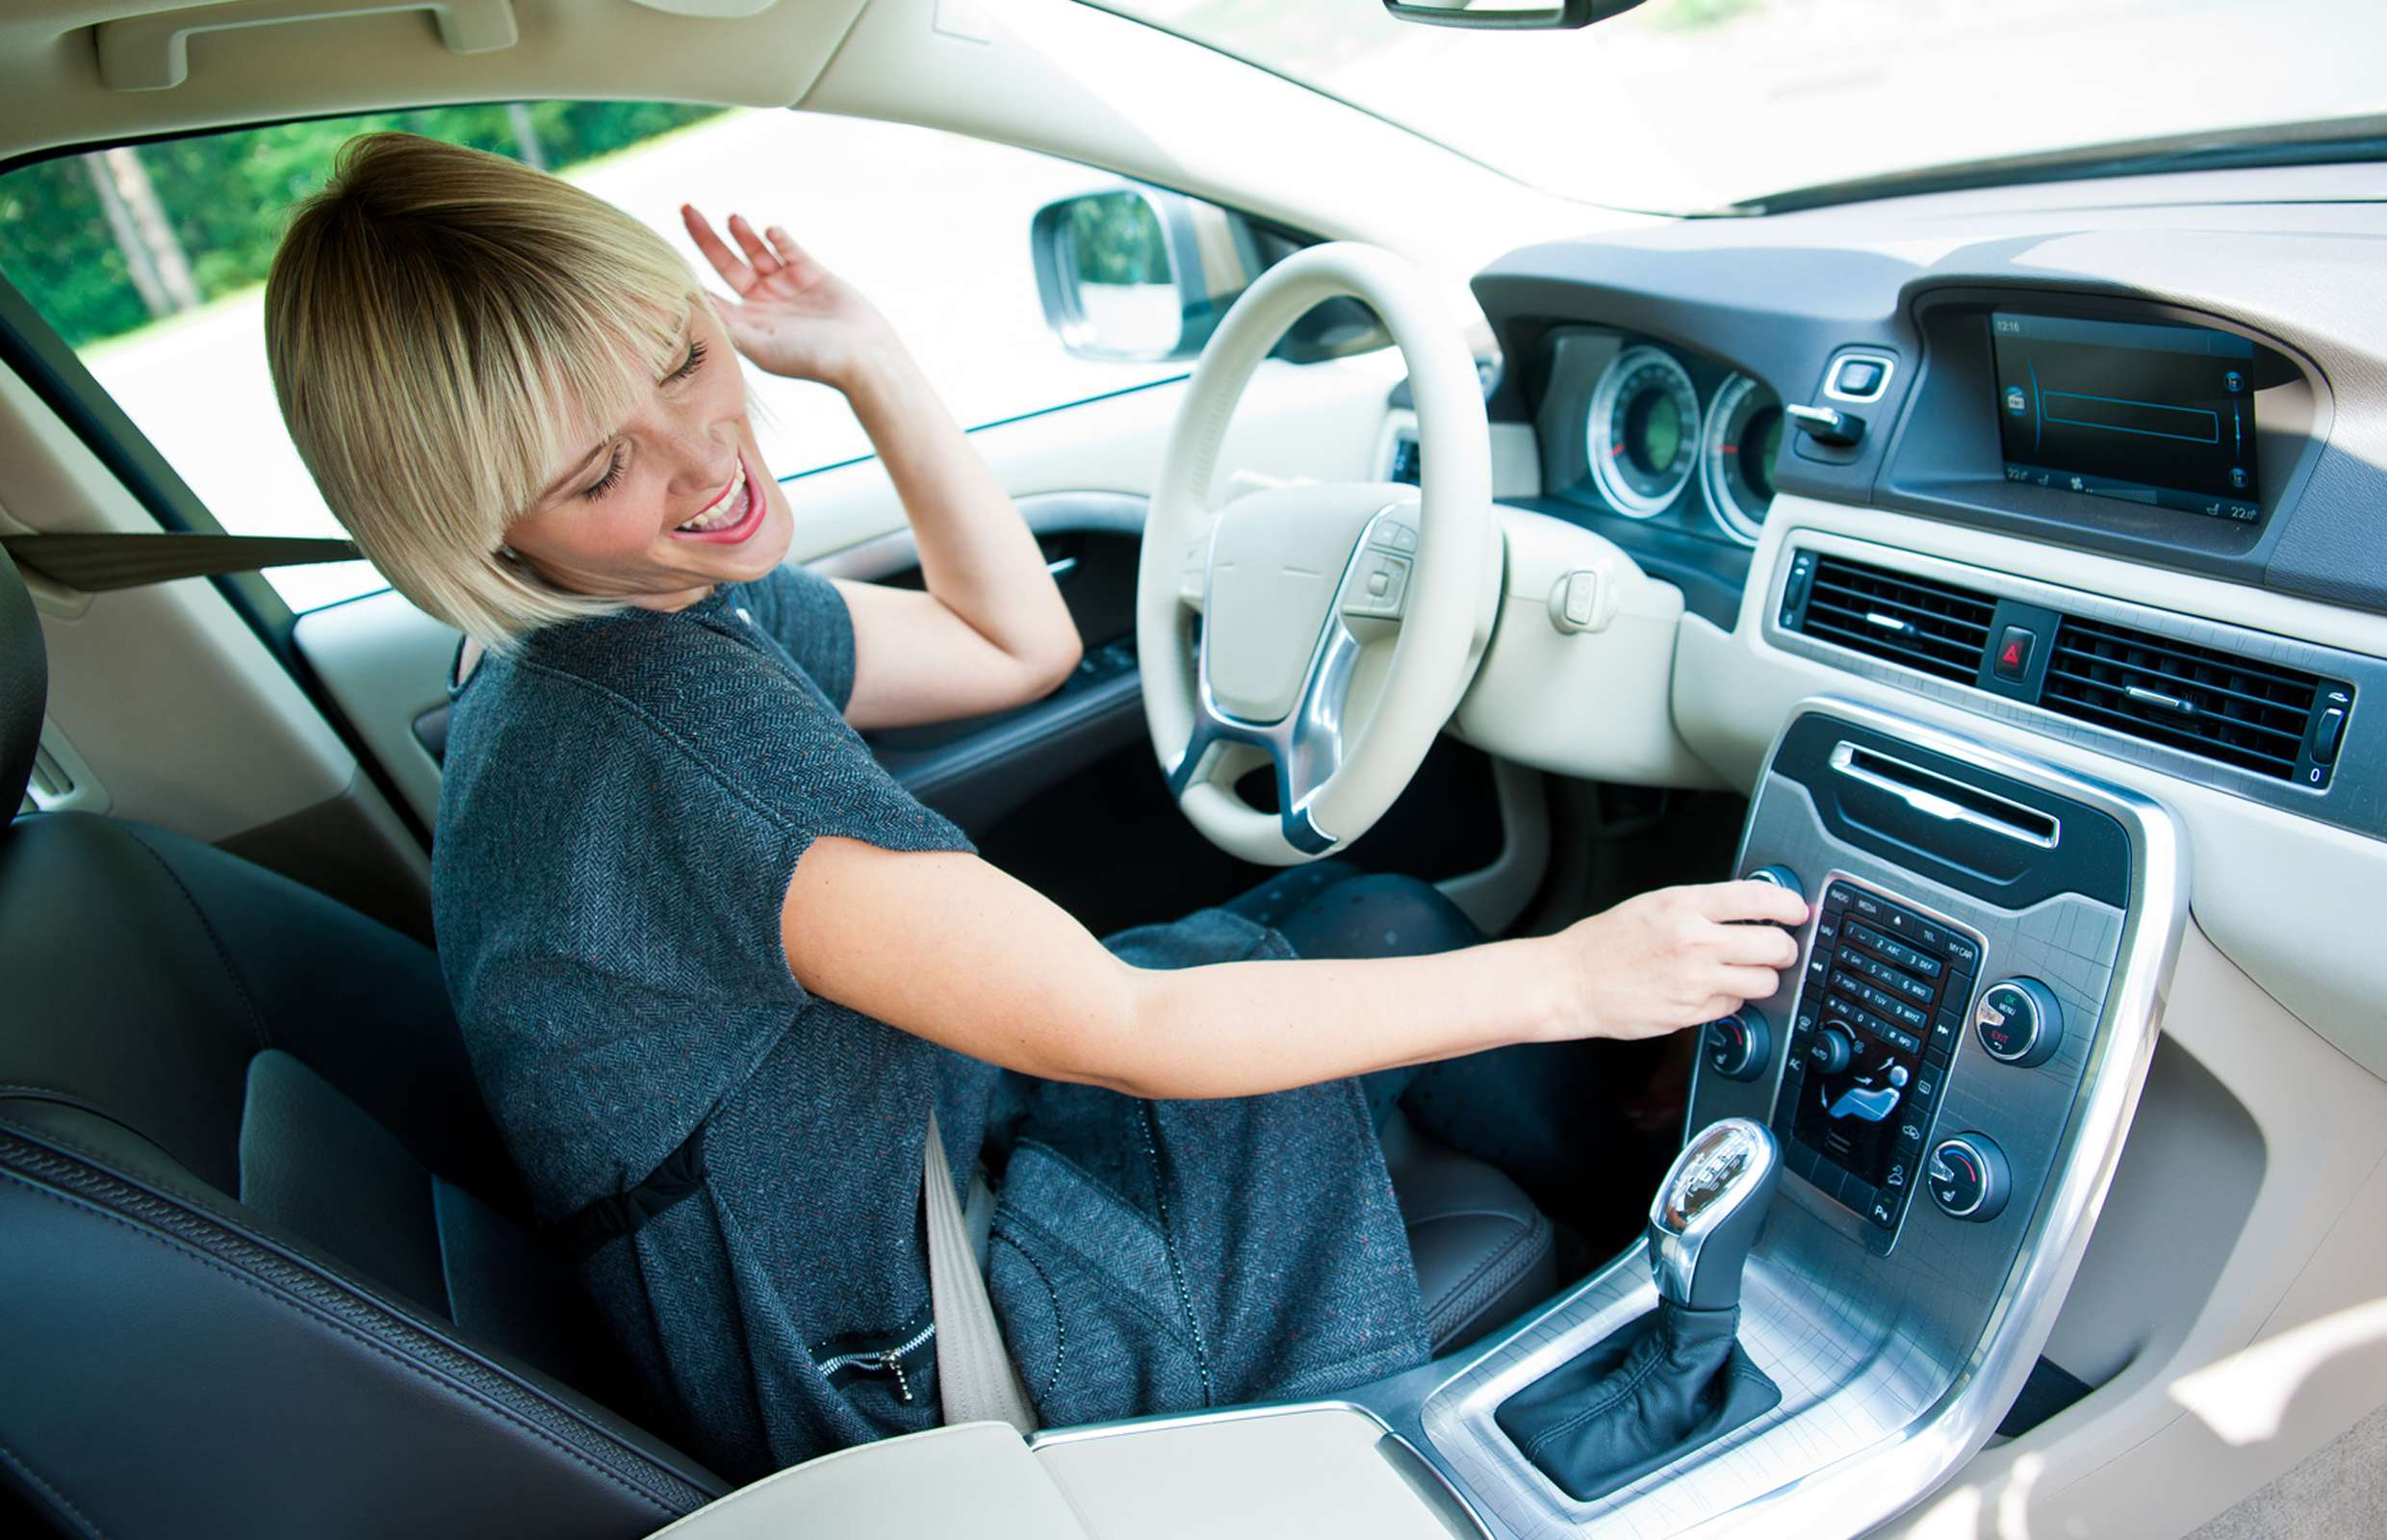 How Listening to Music Can Affect Your Driving - Joyenergizer